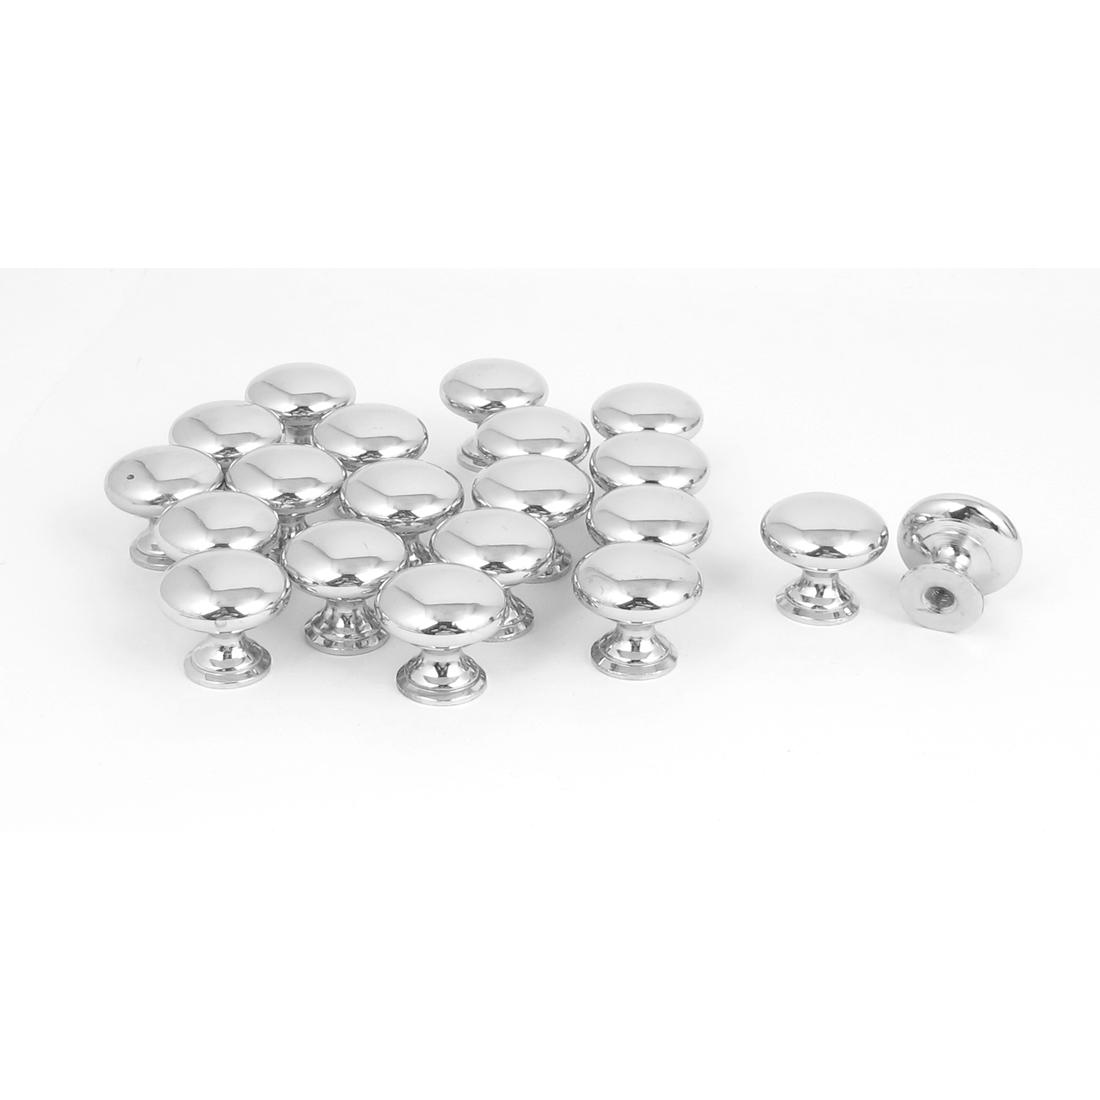 20pcs 25mm x 22mm Alloy Round Pull Knob Silver Tone for Cabinet Drawer